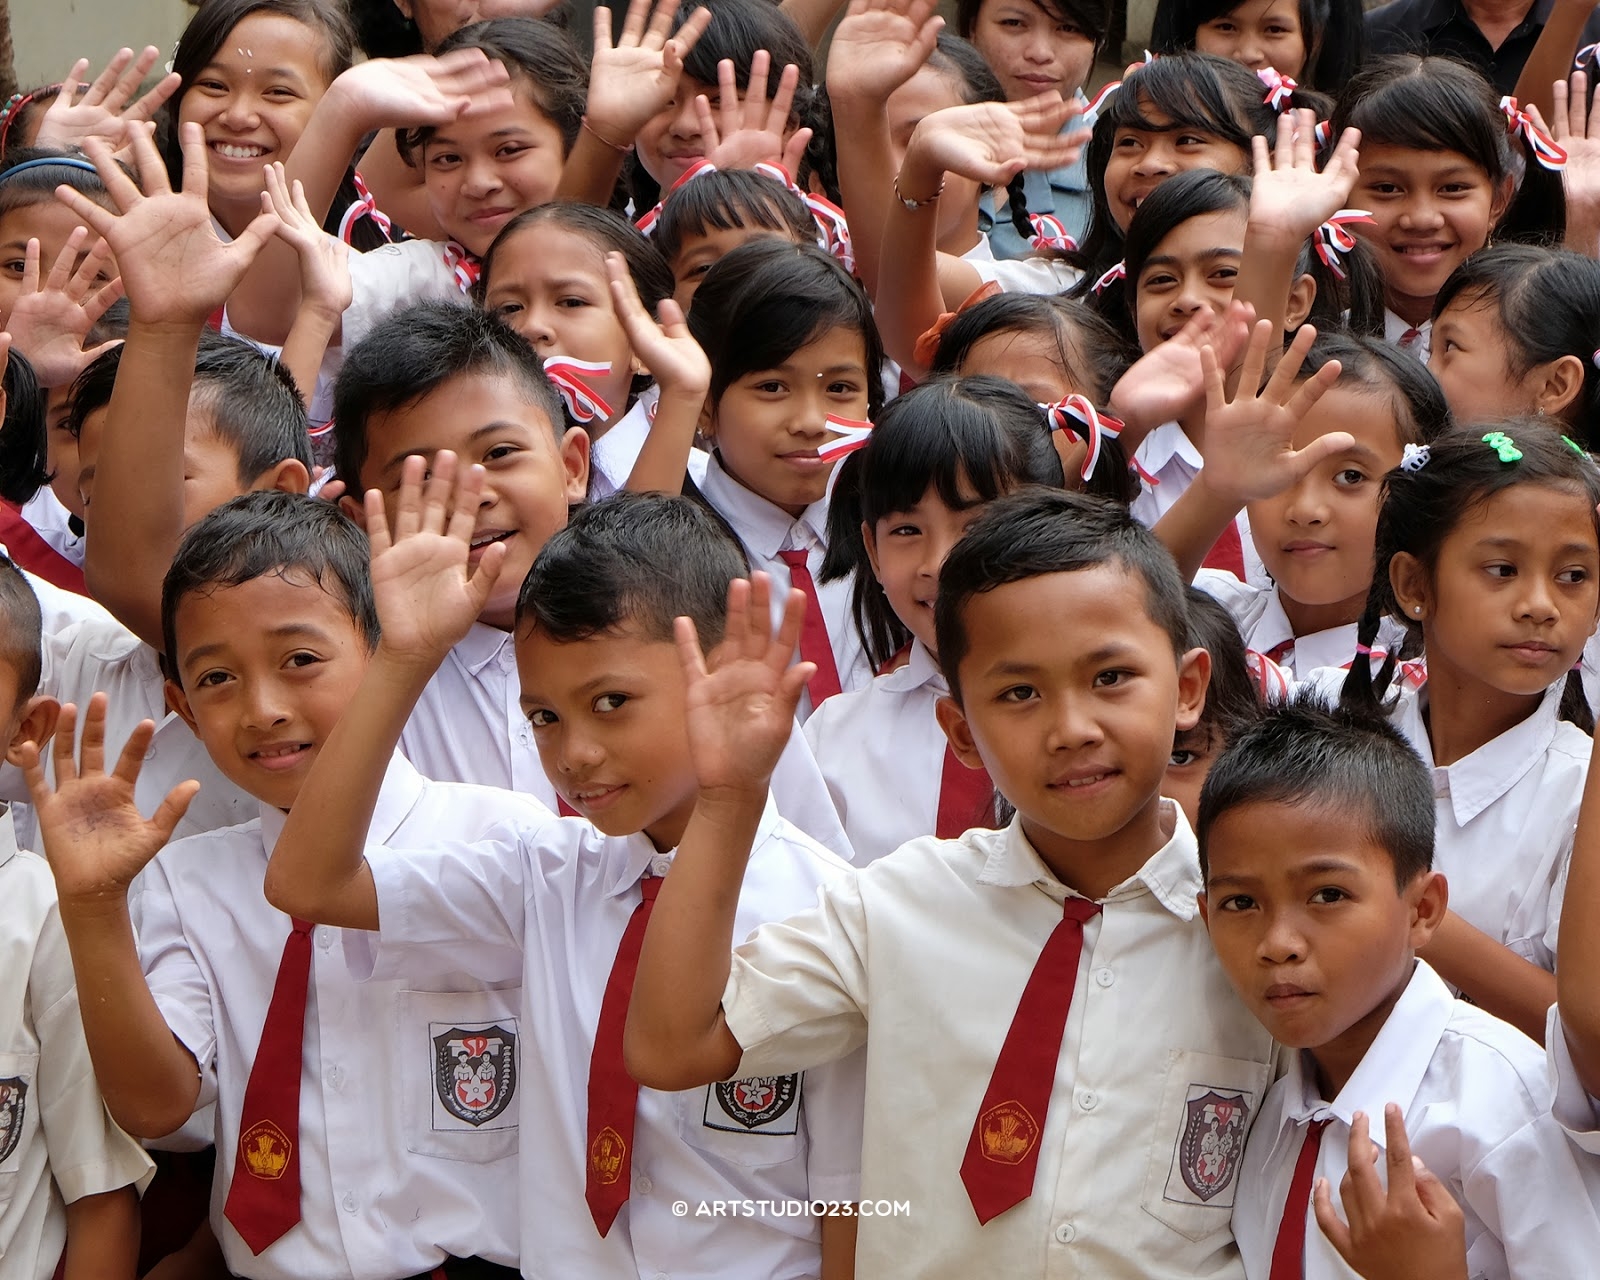 Indonesian children in school uniform